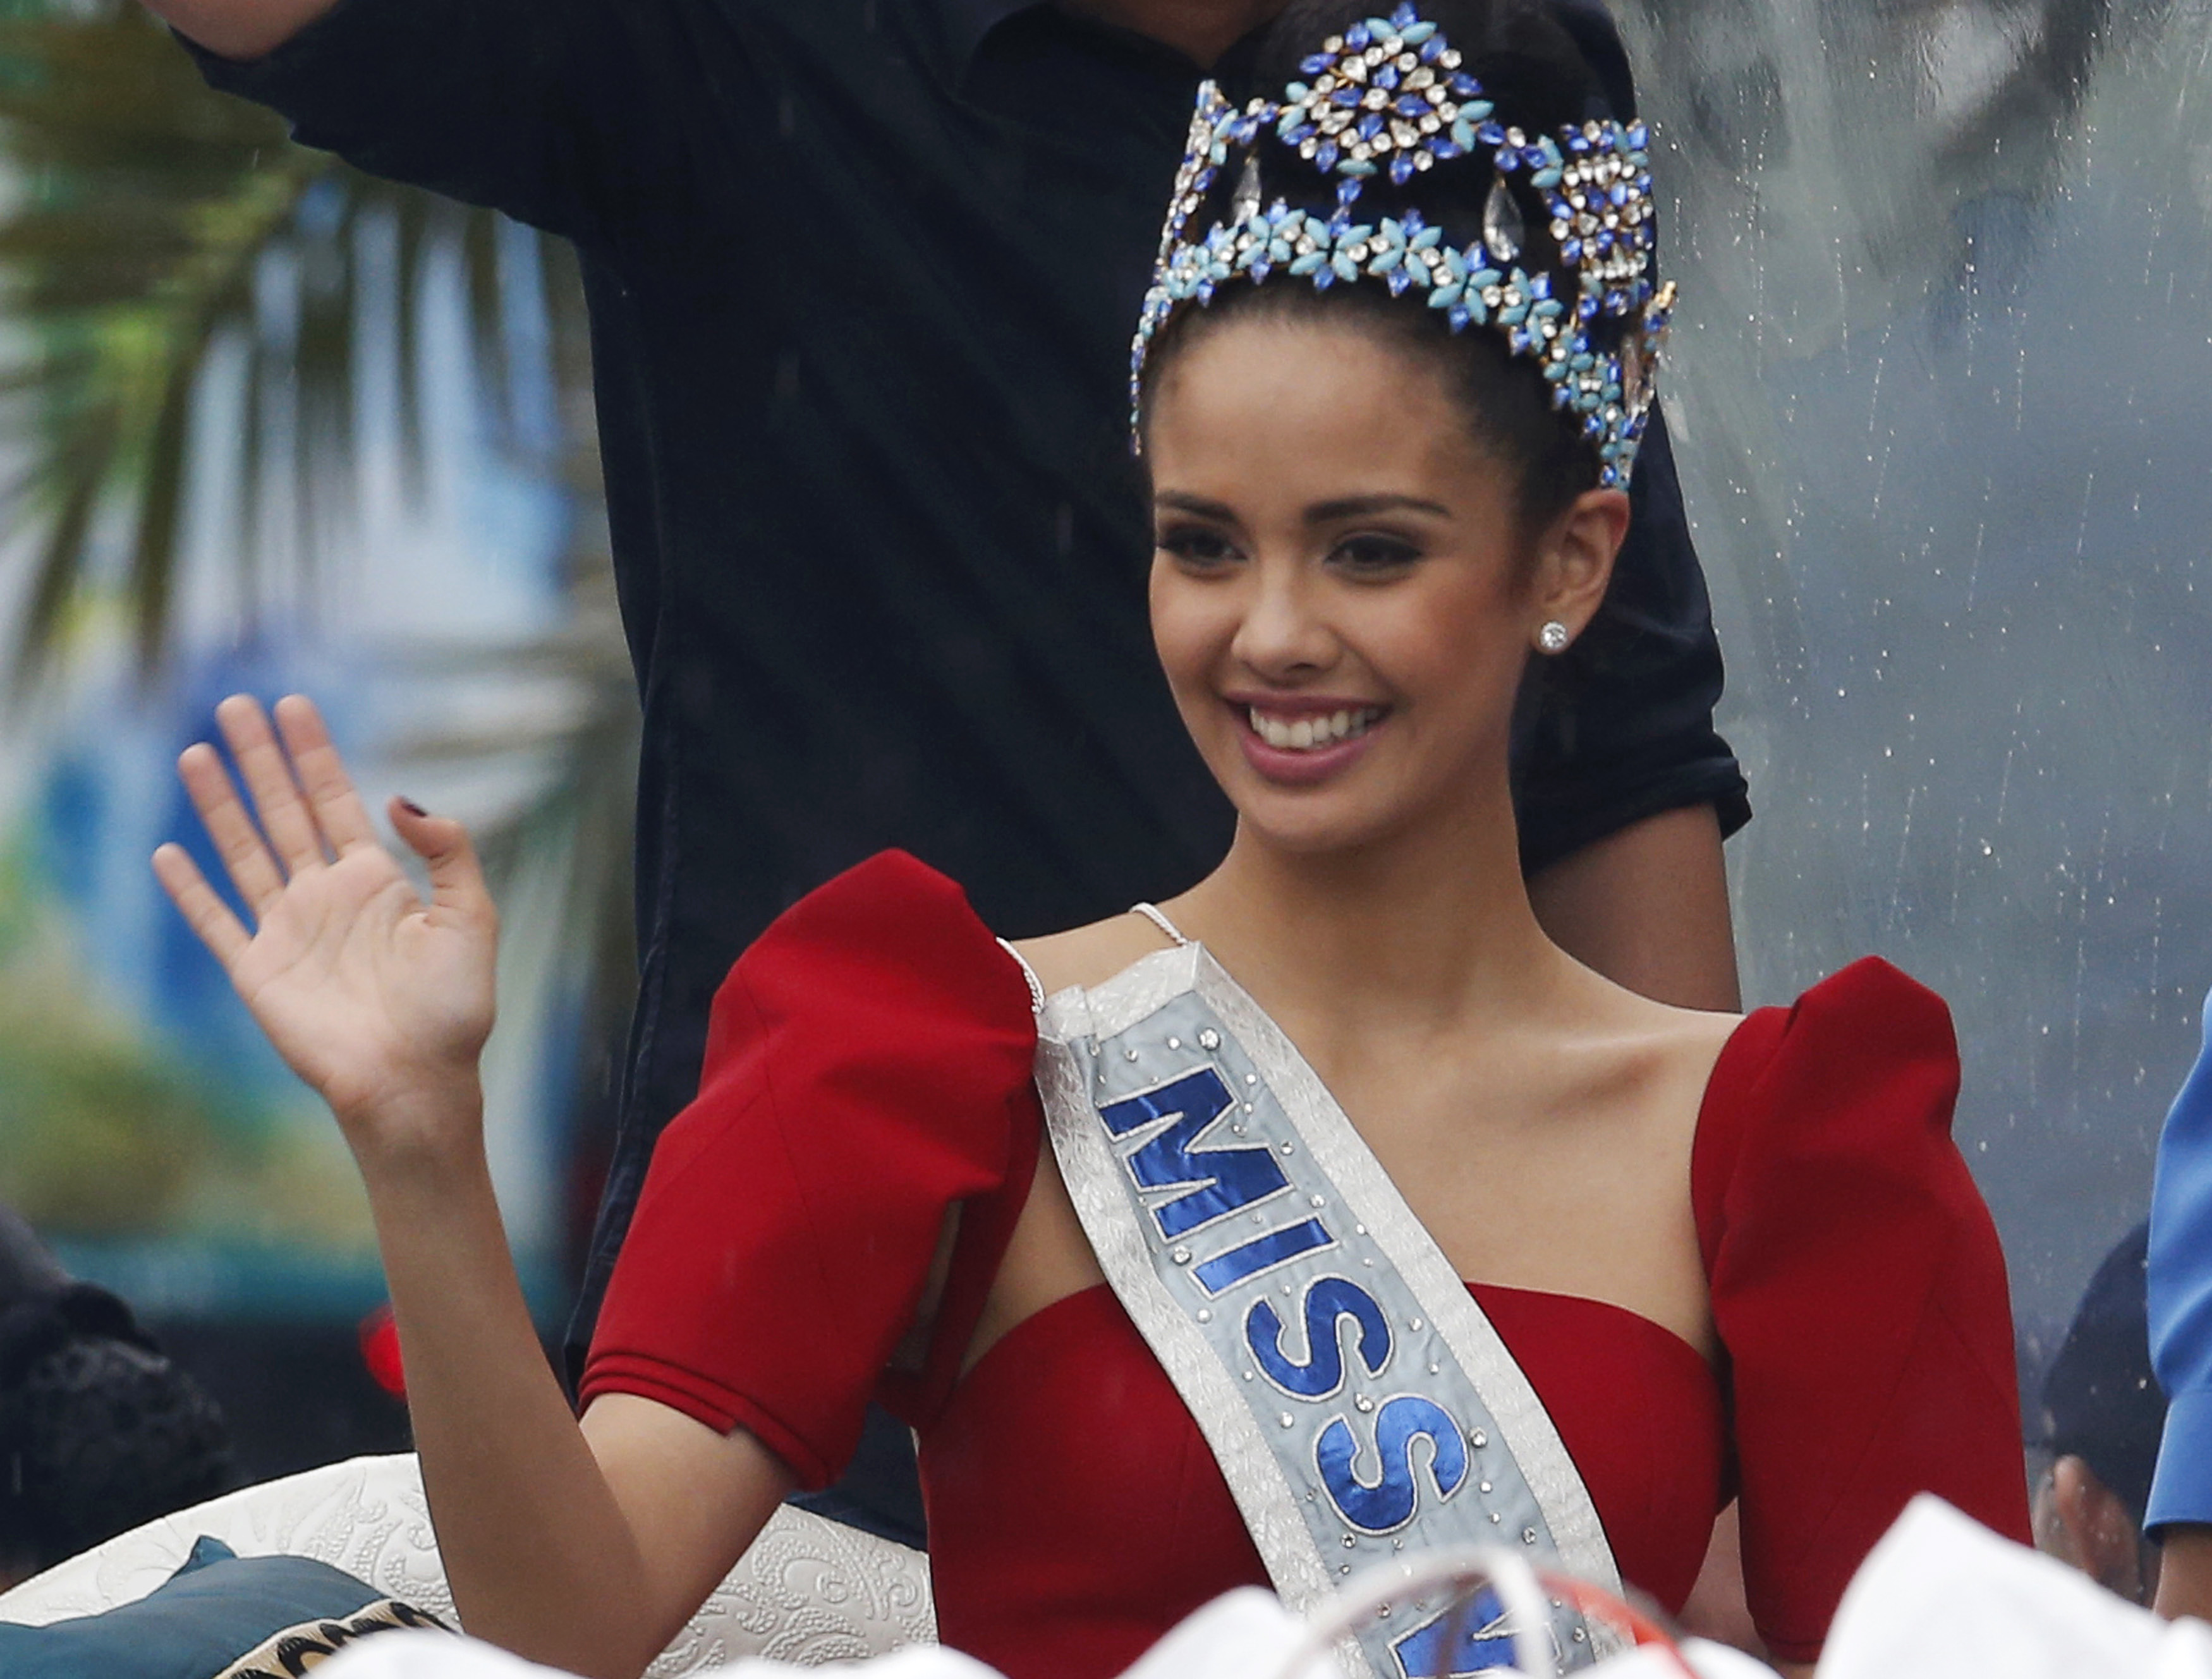 Miss World 2013 Megan Young of the Philippines waves to fans during her victory parade in Manila's Makati financial district October 11, 2013.   REUTERS/Erik De Castro (PHILIPPINES - Tags: ENTERTAINMENT SOCIETY) - RTX1472Z